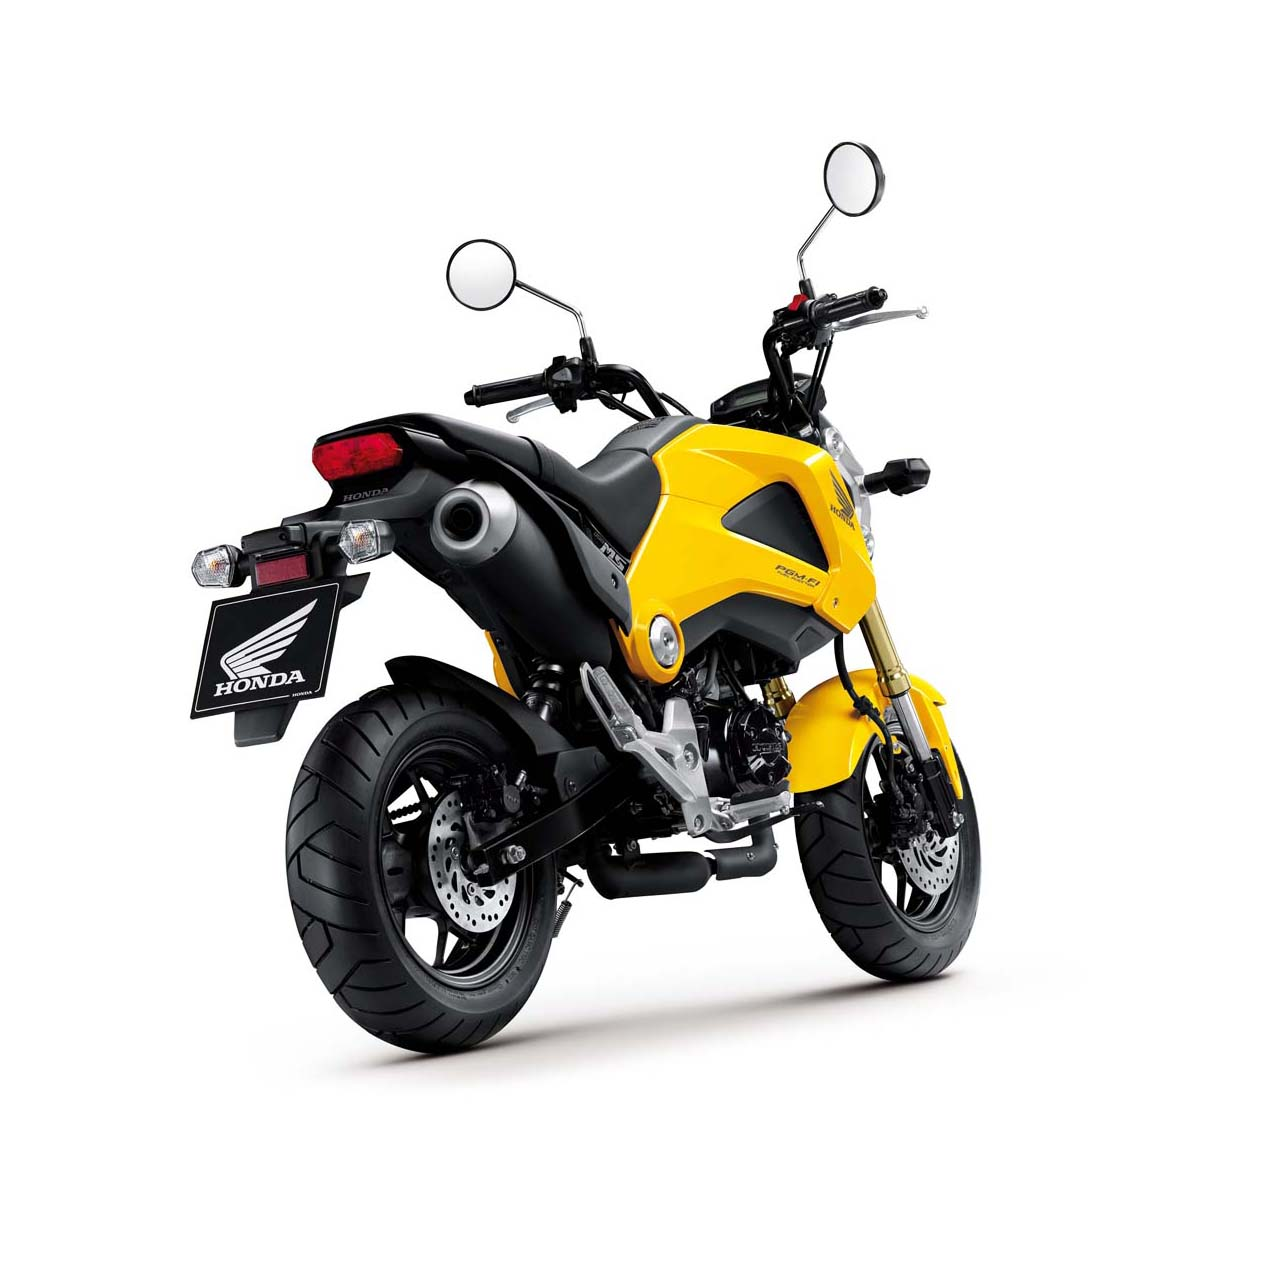 2014 honda grom perfect small city motorcycle welcome for Honda grom